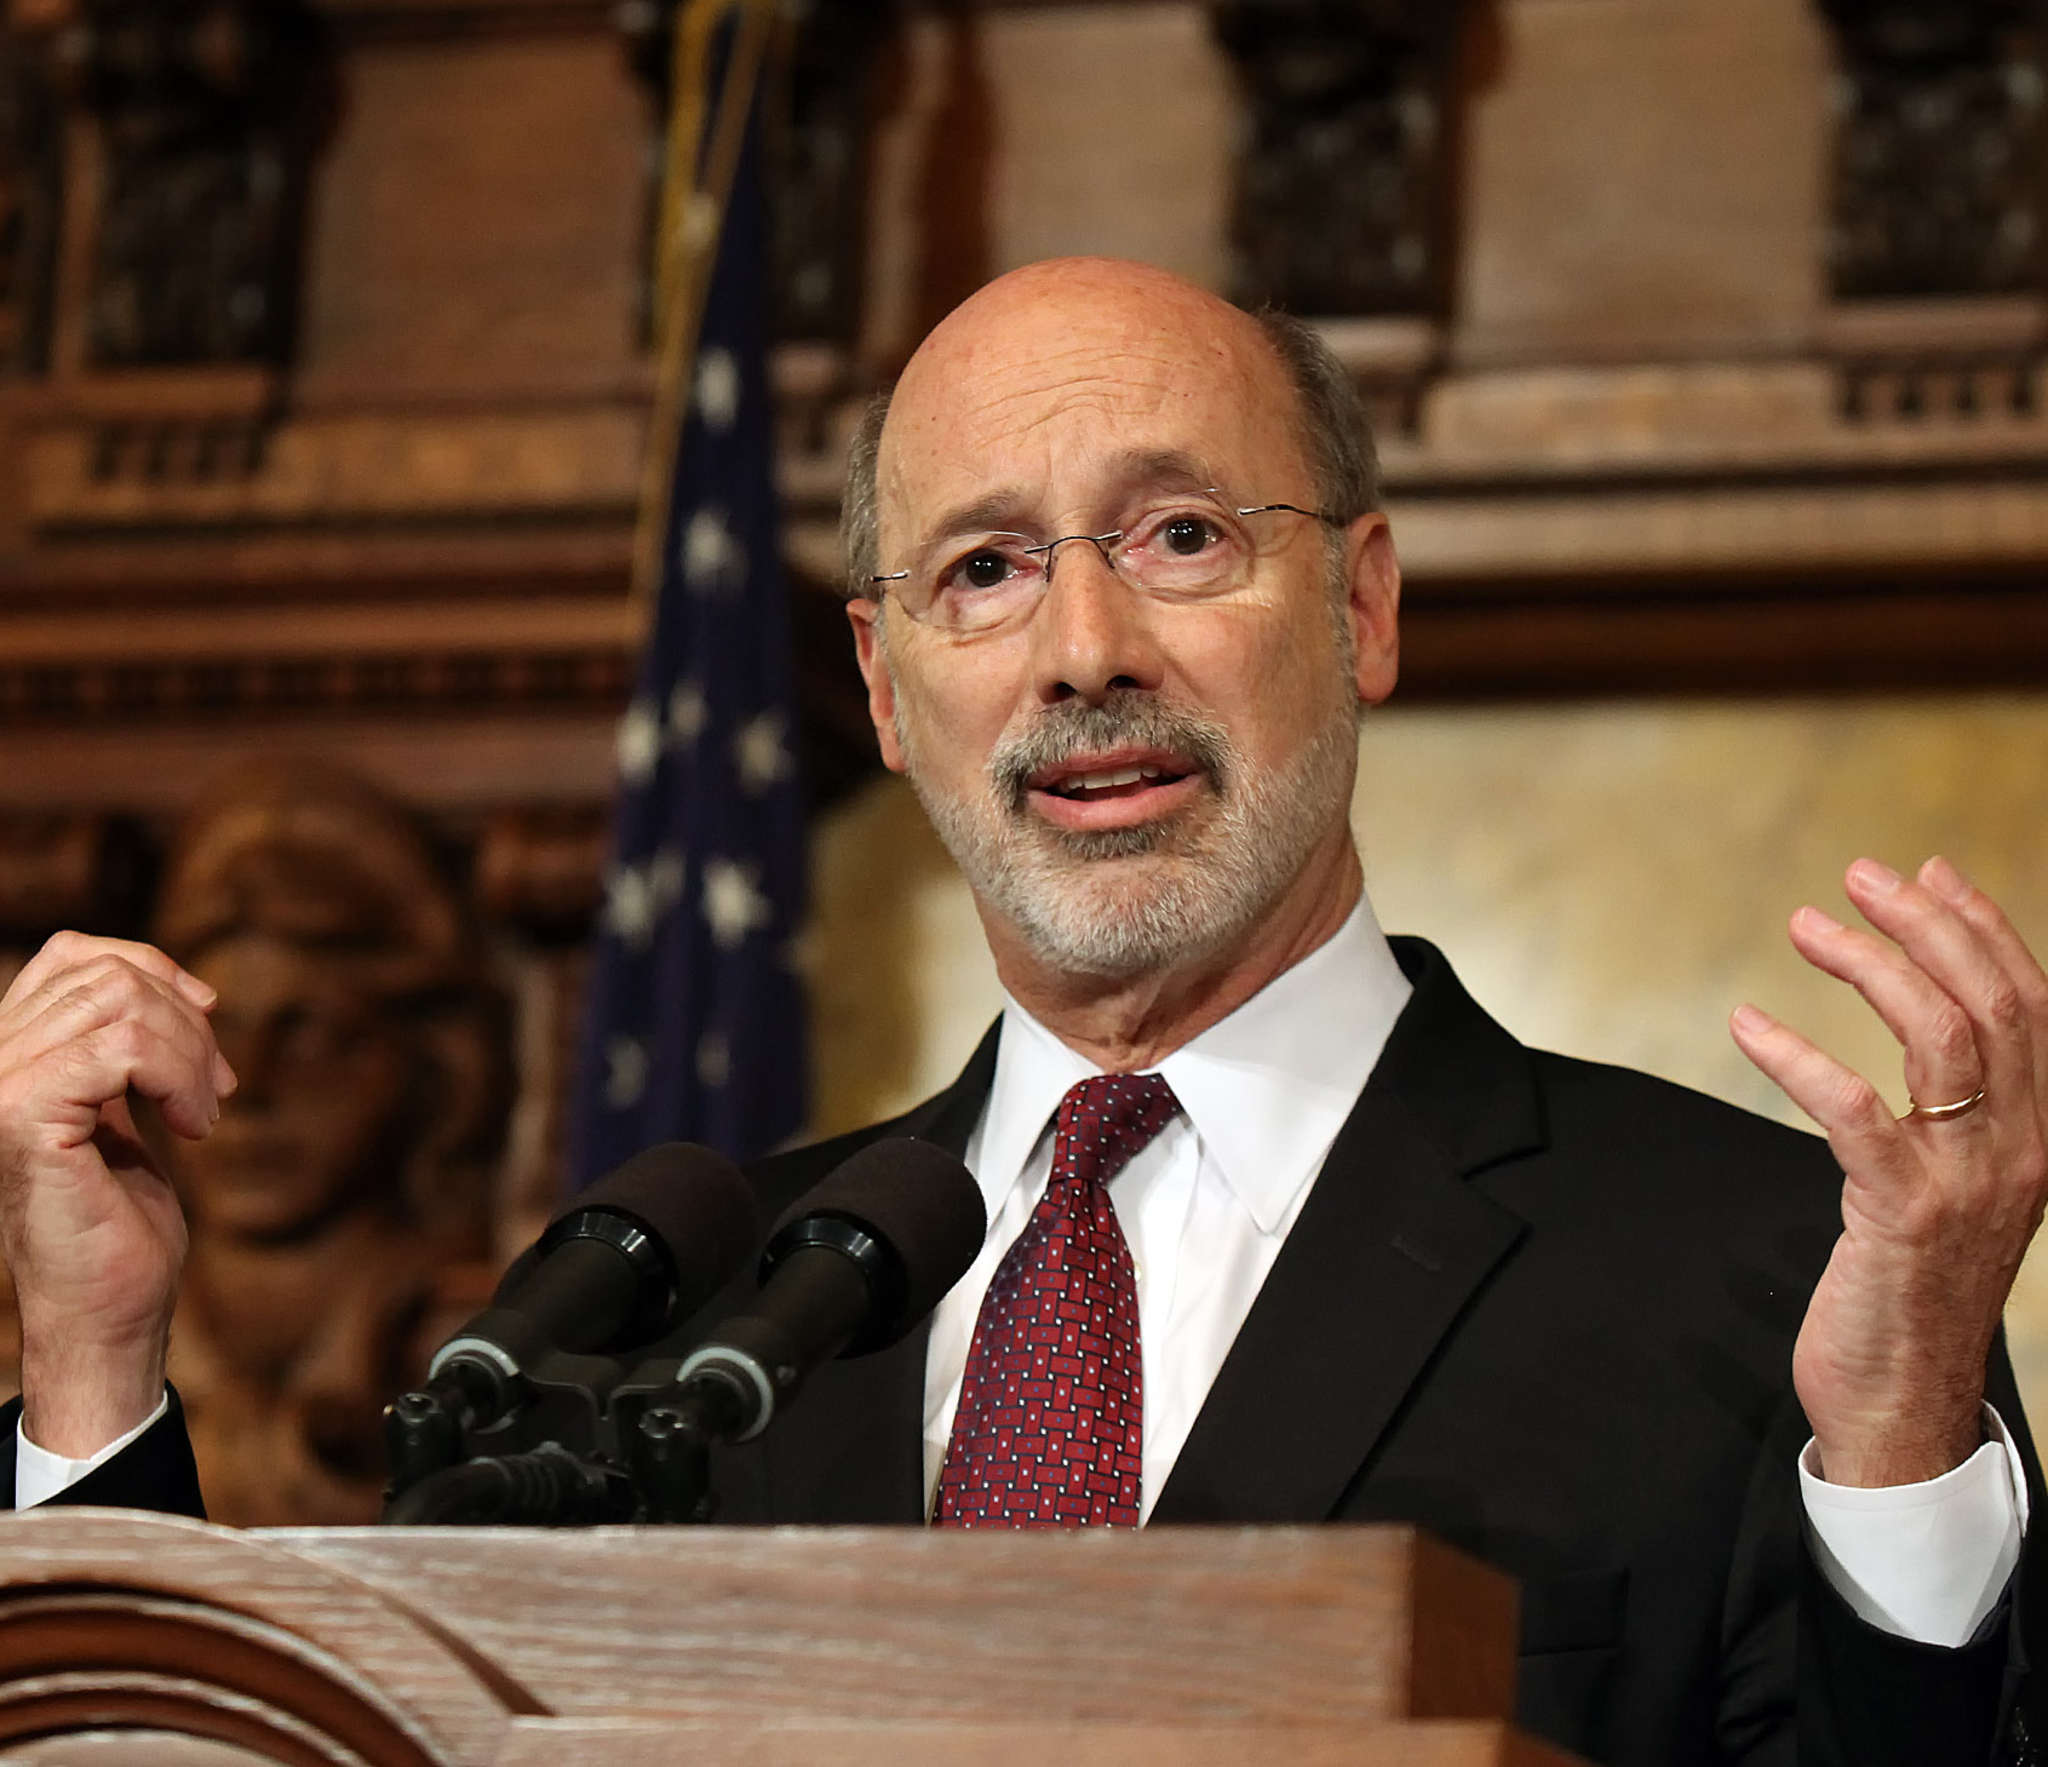 Gov. Wolf is accused of firing the husband of Sen. Lisa Baker out of retribution. Associated Press